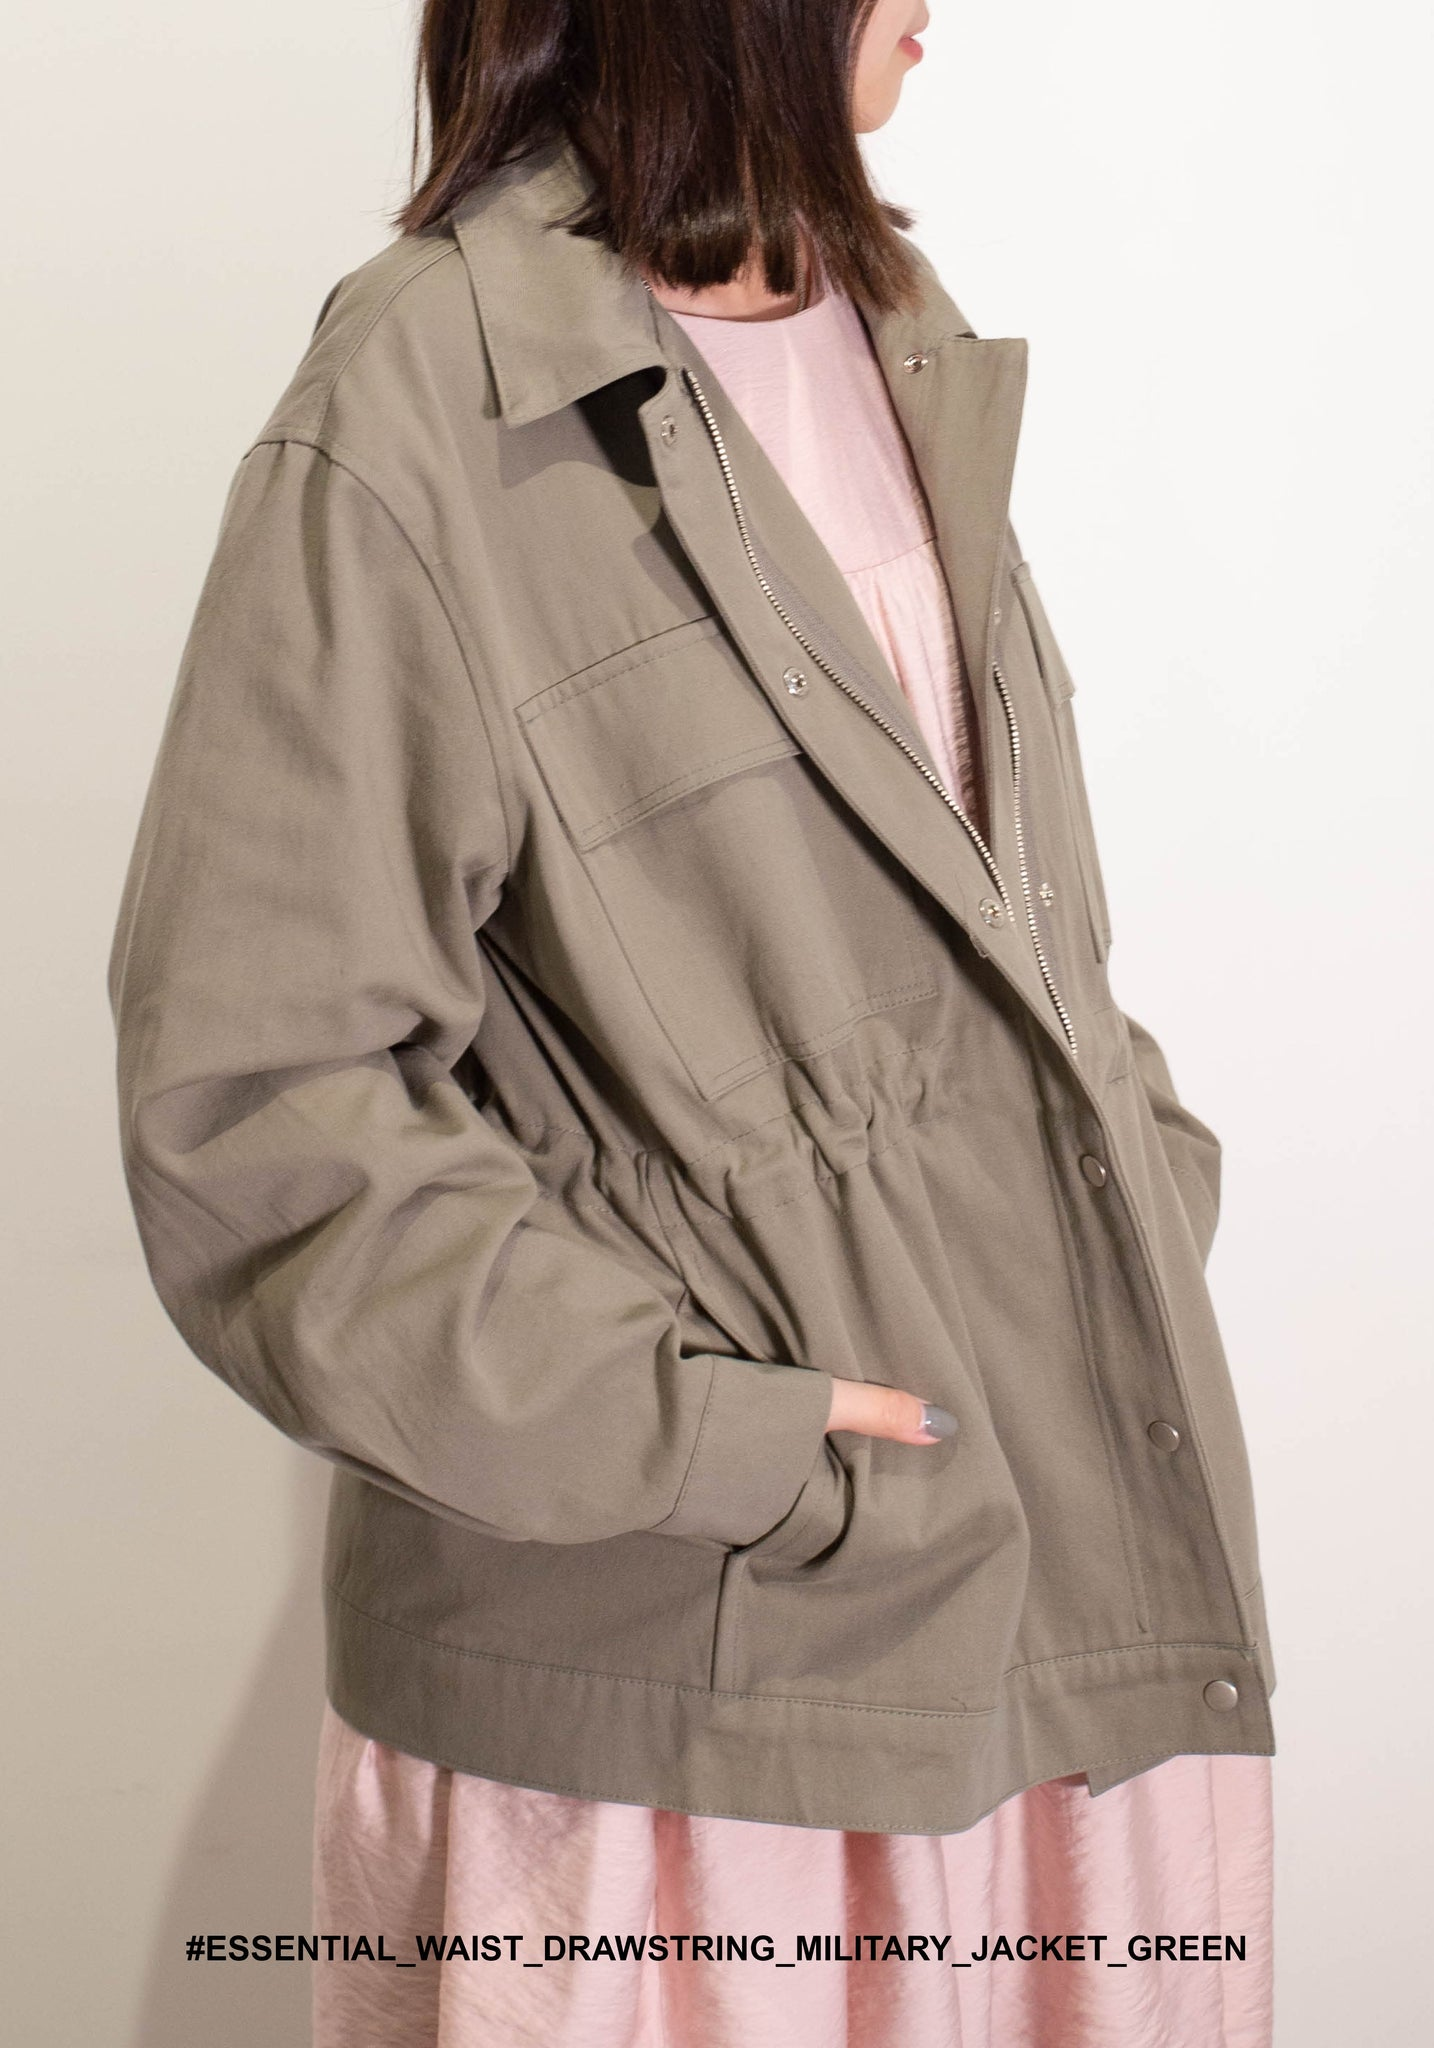 Essential Waist Drawstring Military Jacket Green - whoami